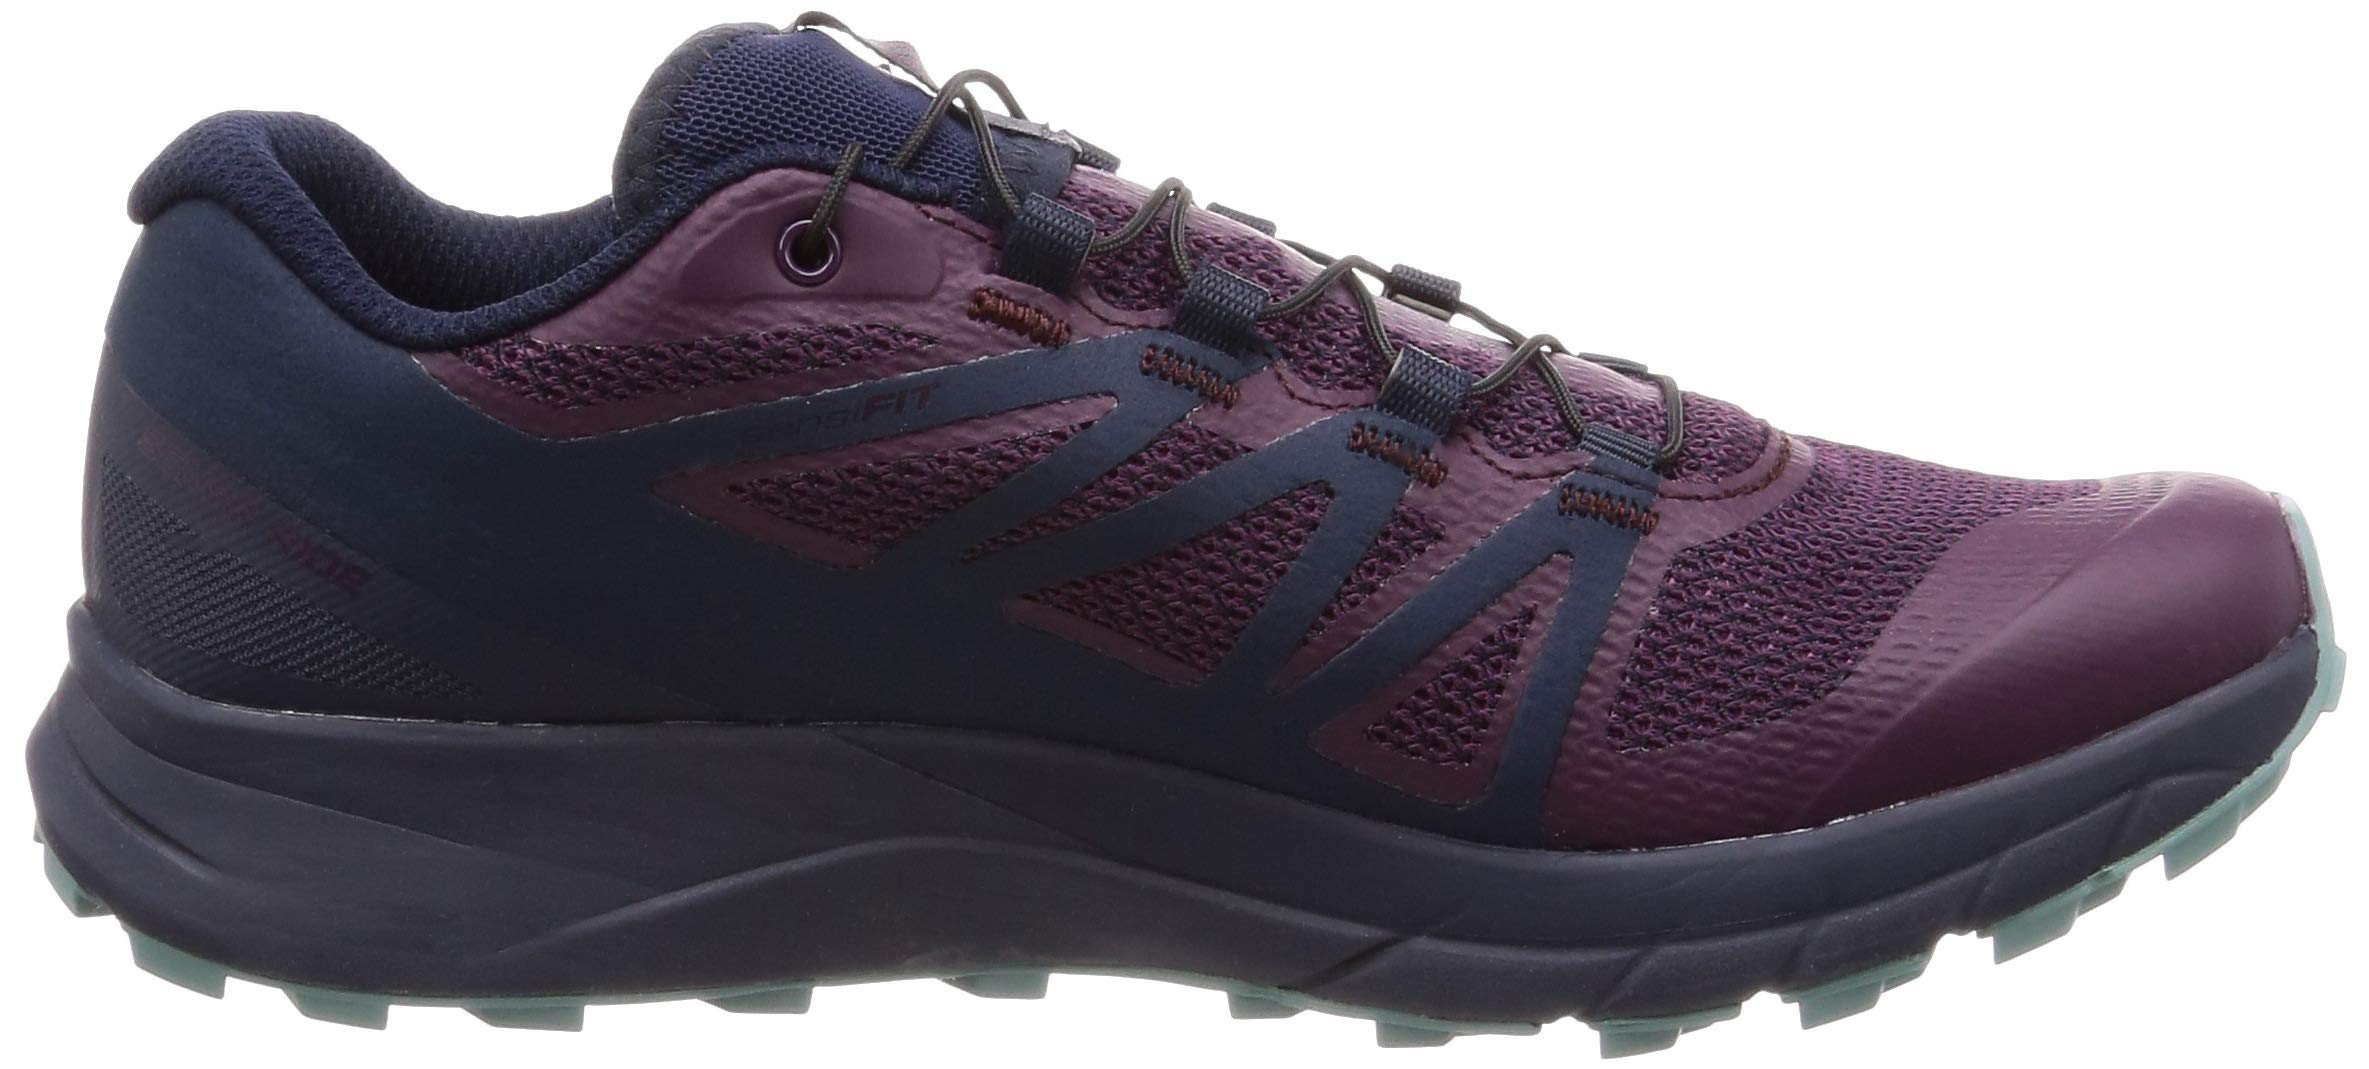 Salomon Sense Ride Running Shoe - Women's Potent Purple/Graphite/Navy Blazer 6 by Salomon (Image #6)